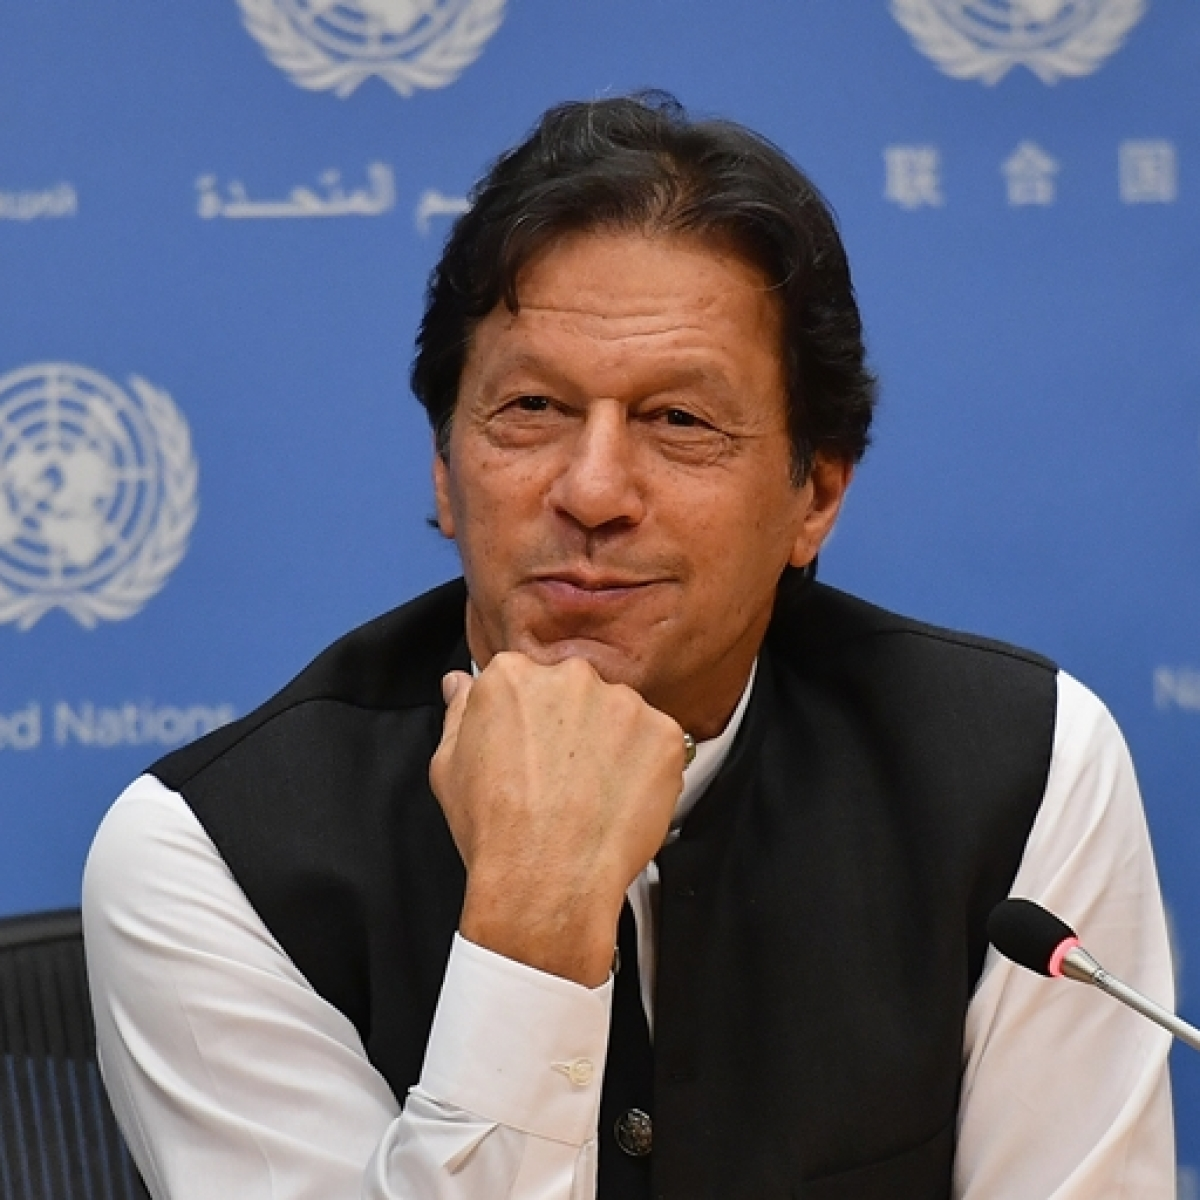 Imran Khan blames Bollywood movies for sex crimes in Pakistan; Twitter ridicules Pak PM